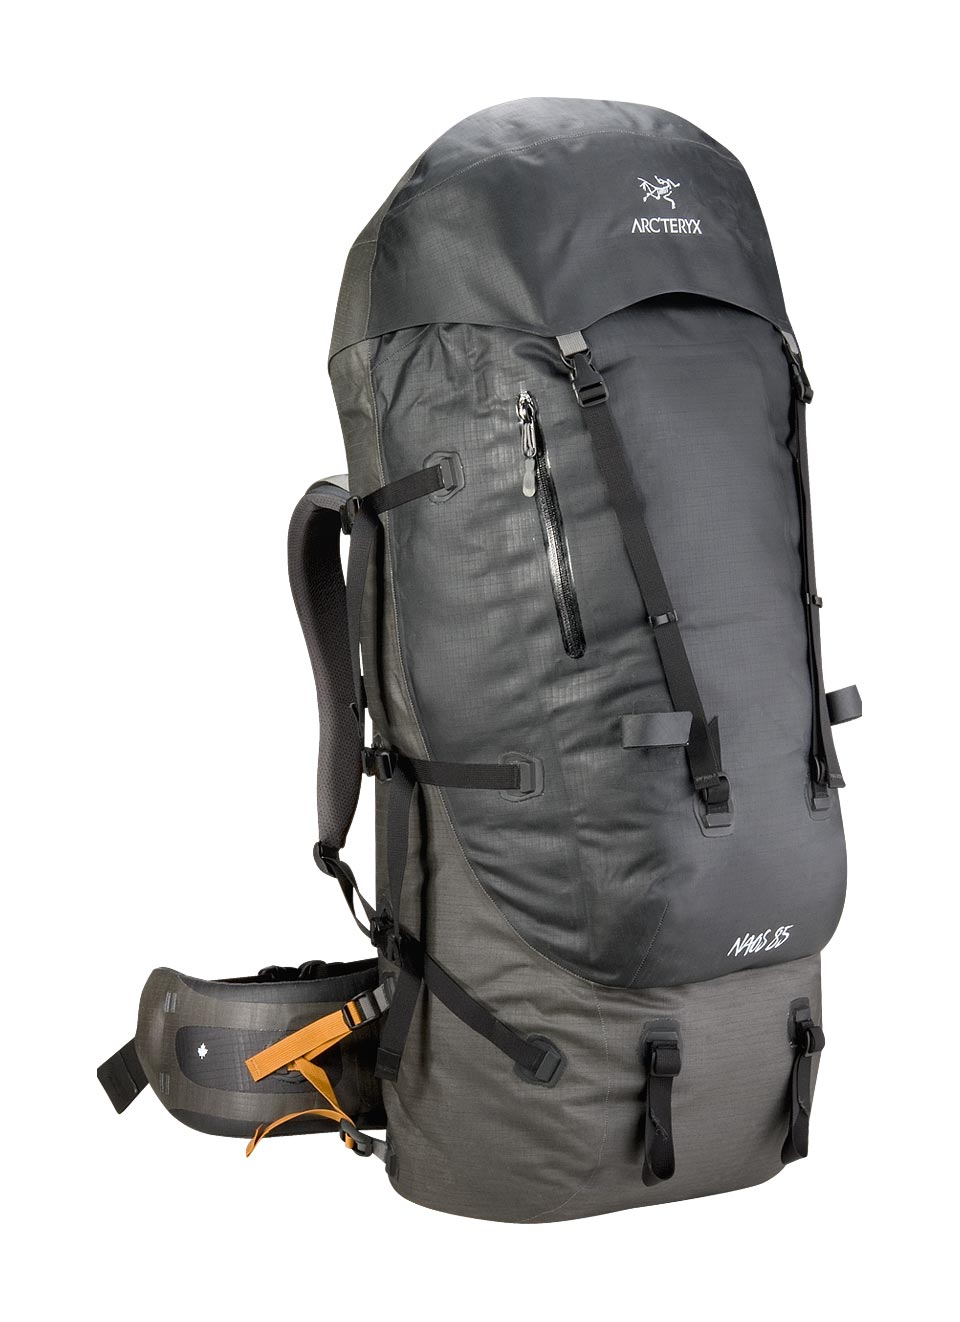 Arcteryx Black bird Naos 85